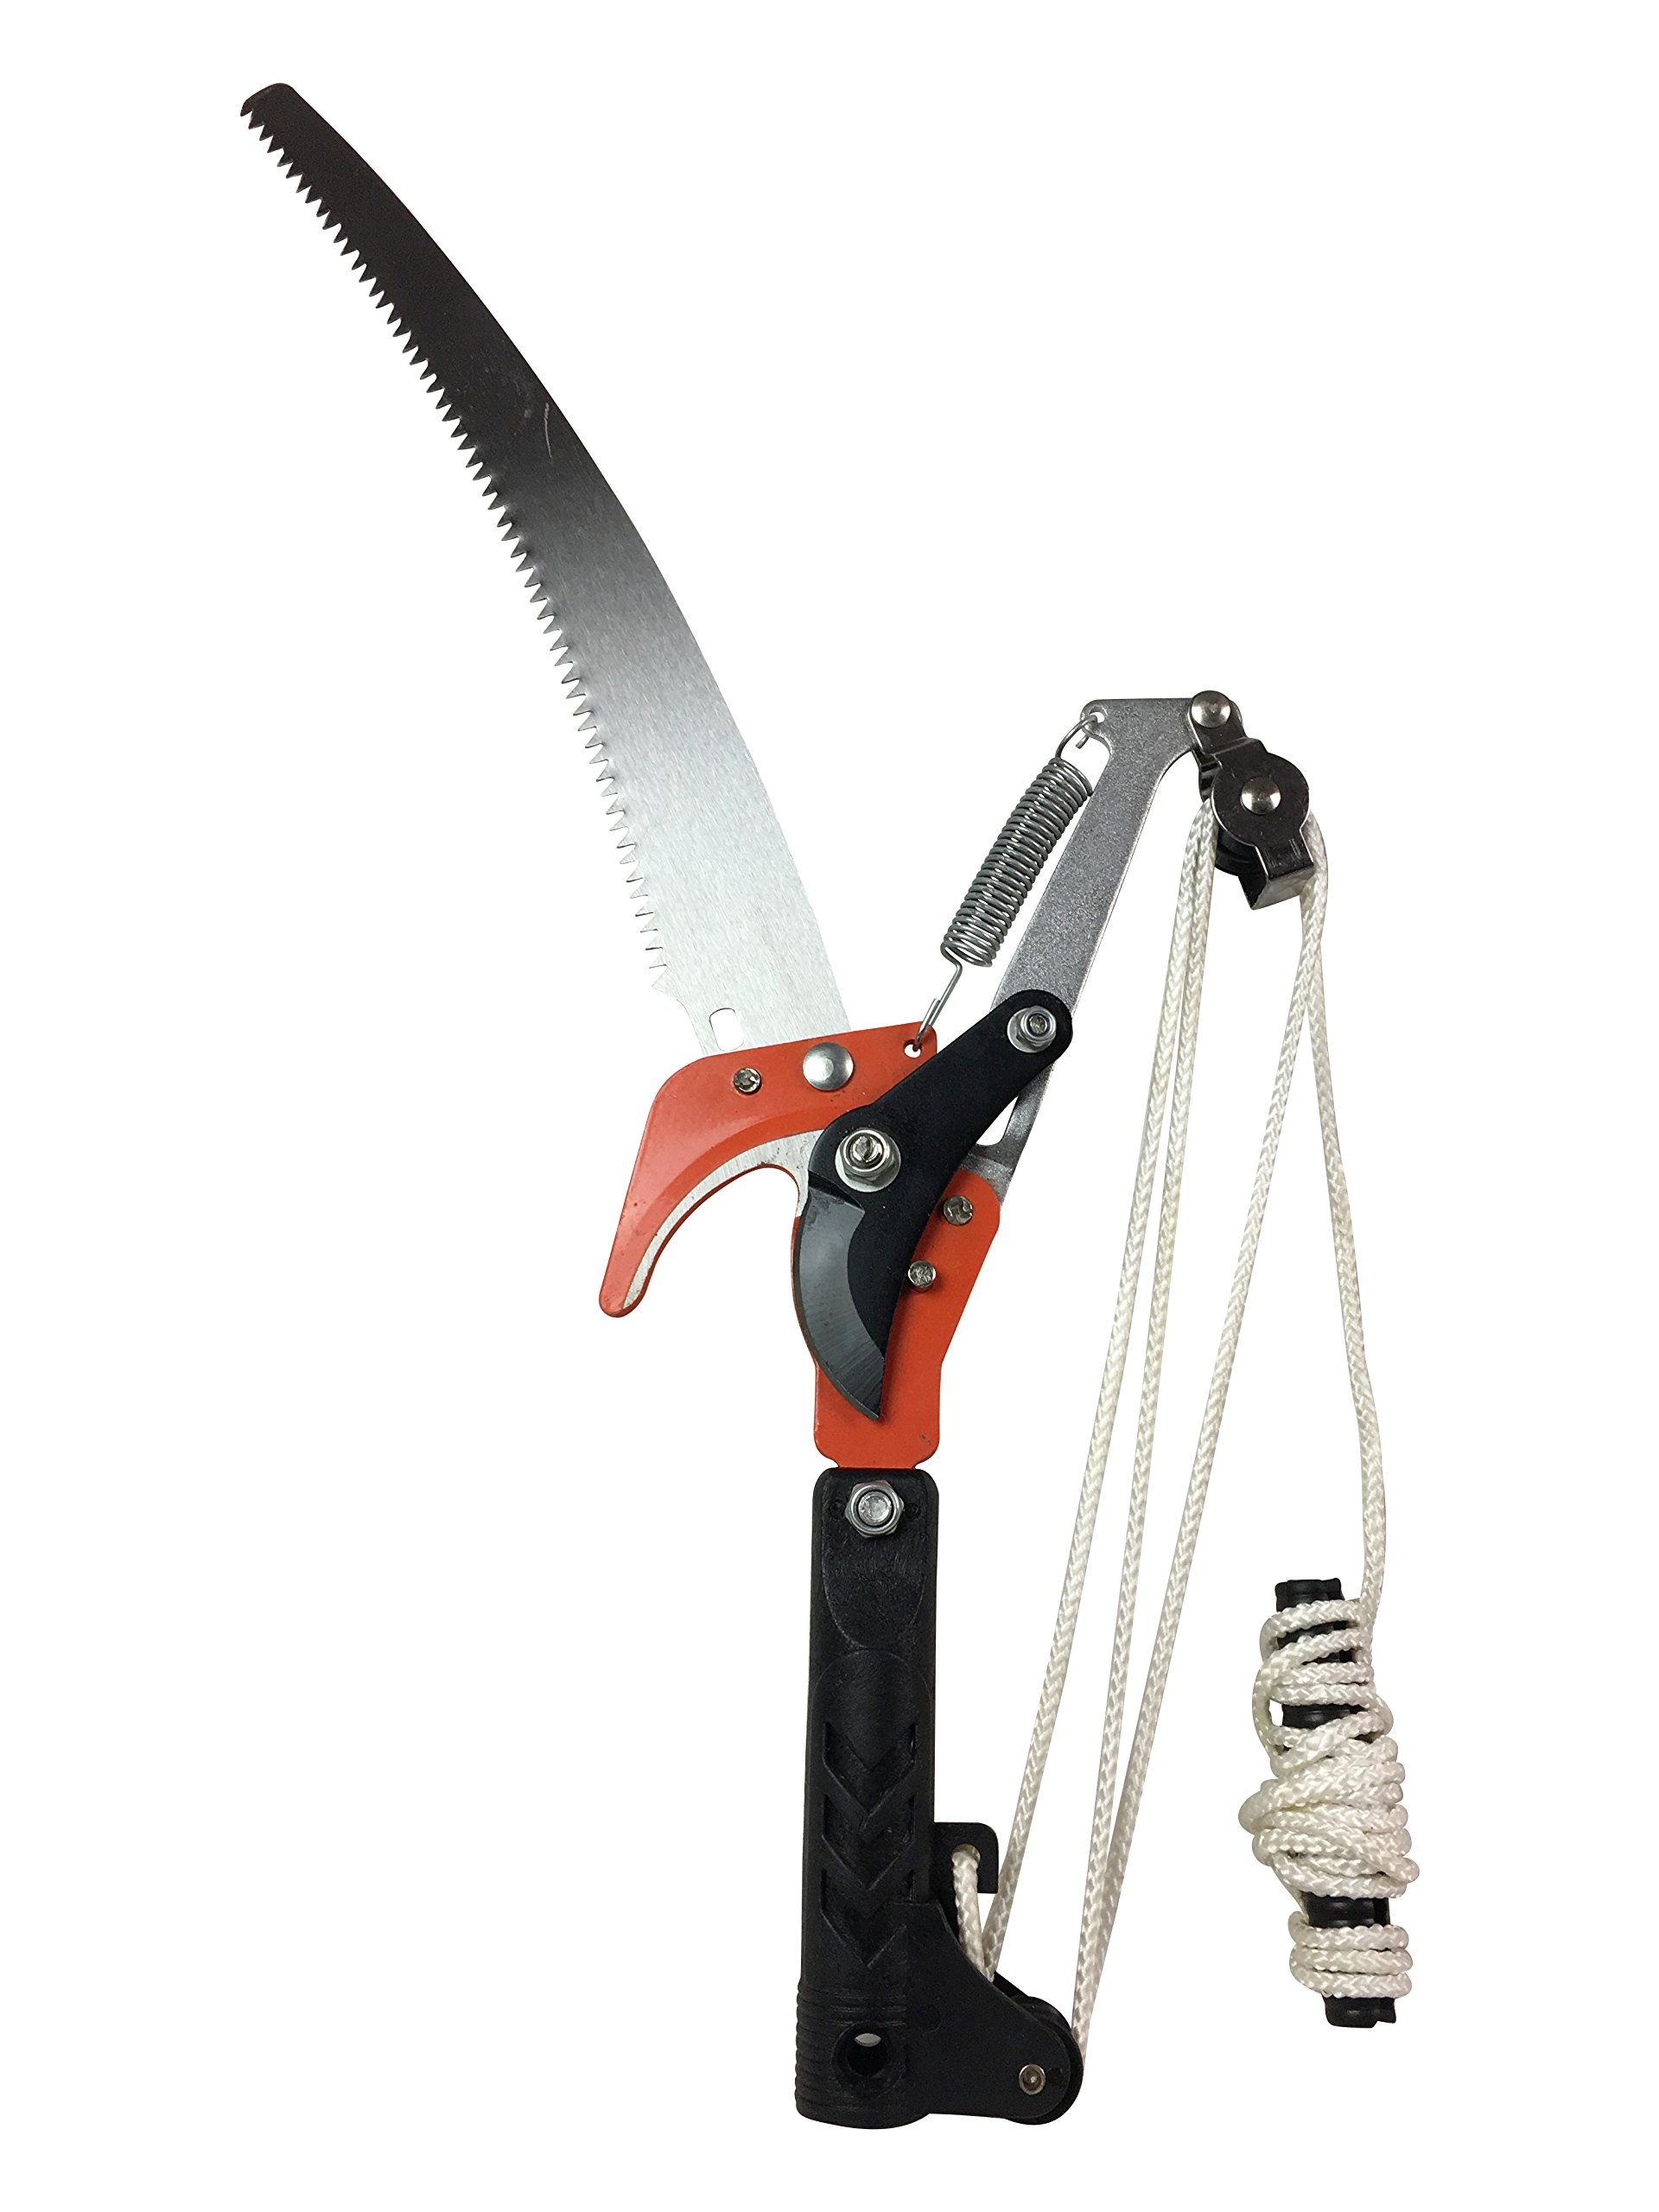 Steel Workers Pole Tree Pruner with Saw - Head Only (No Pole Included)